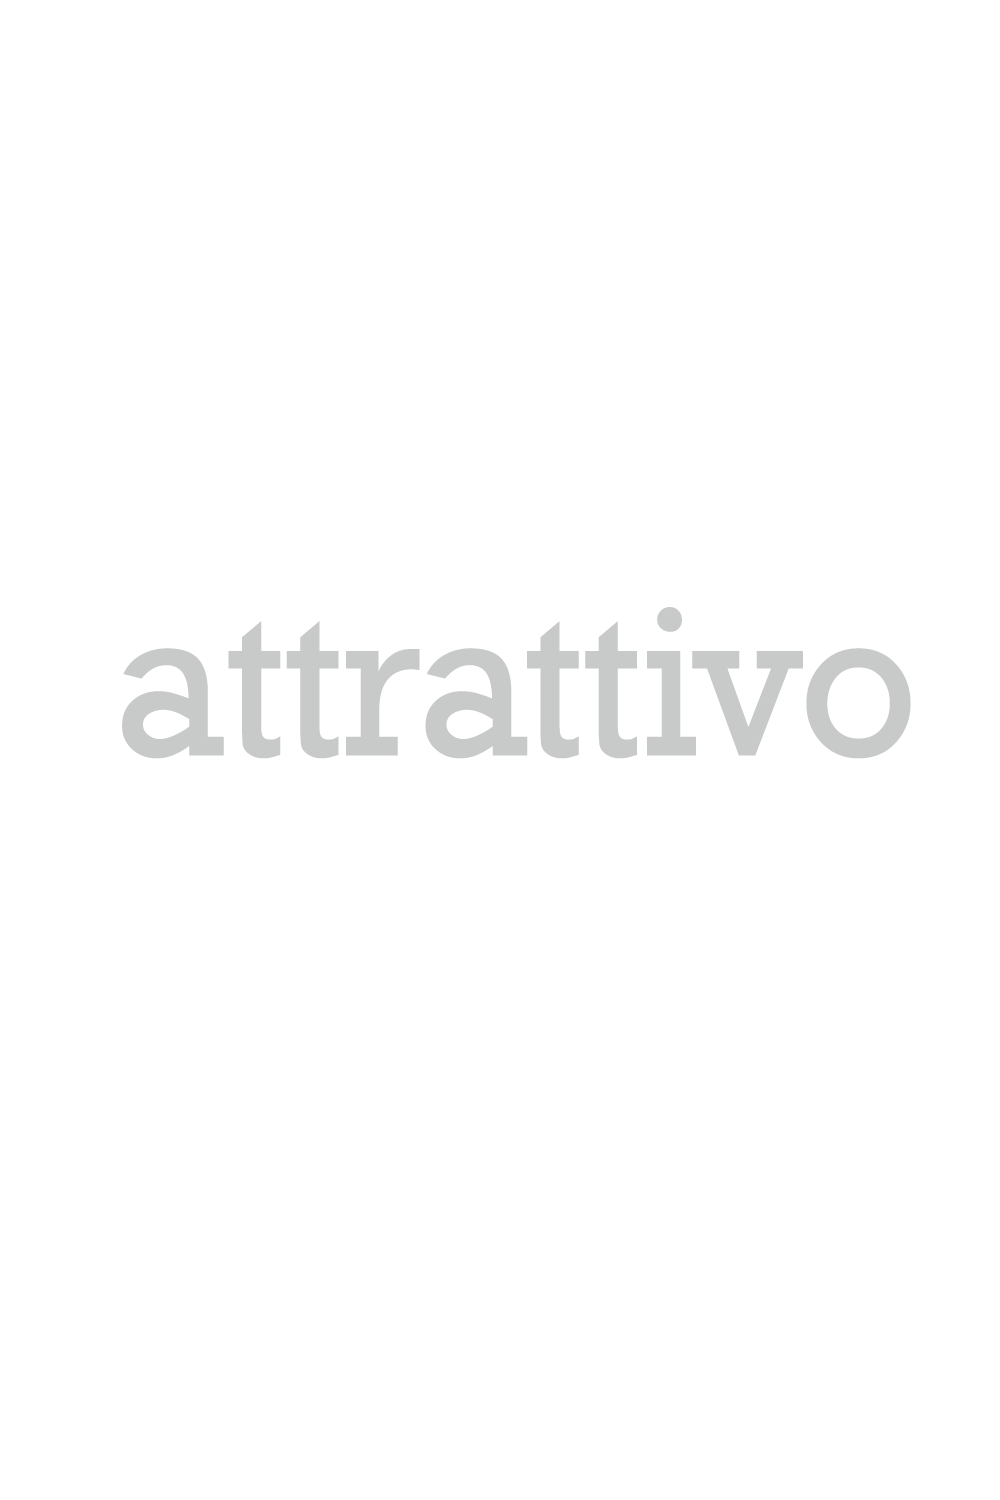 https://www.attrattivo.gr/media/catalog/product/cache/2/image/1800x/040ec09b1e35df139433887a97daa66f/5/2/5207251152761_1.jpg